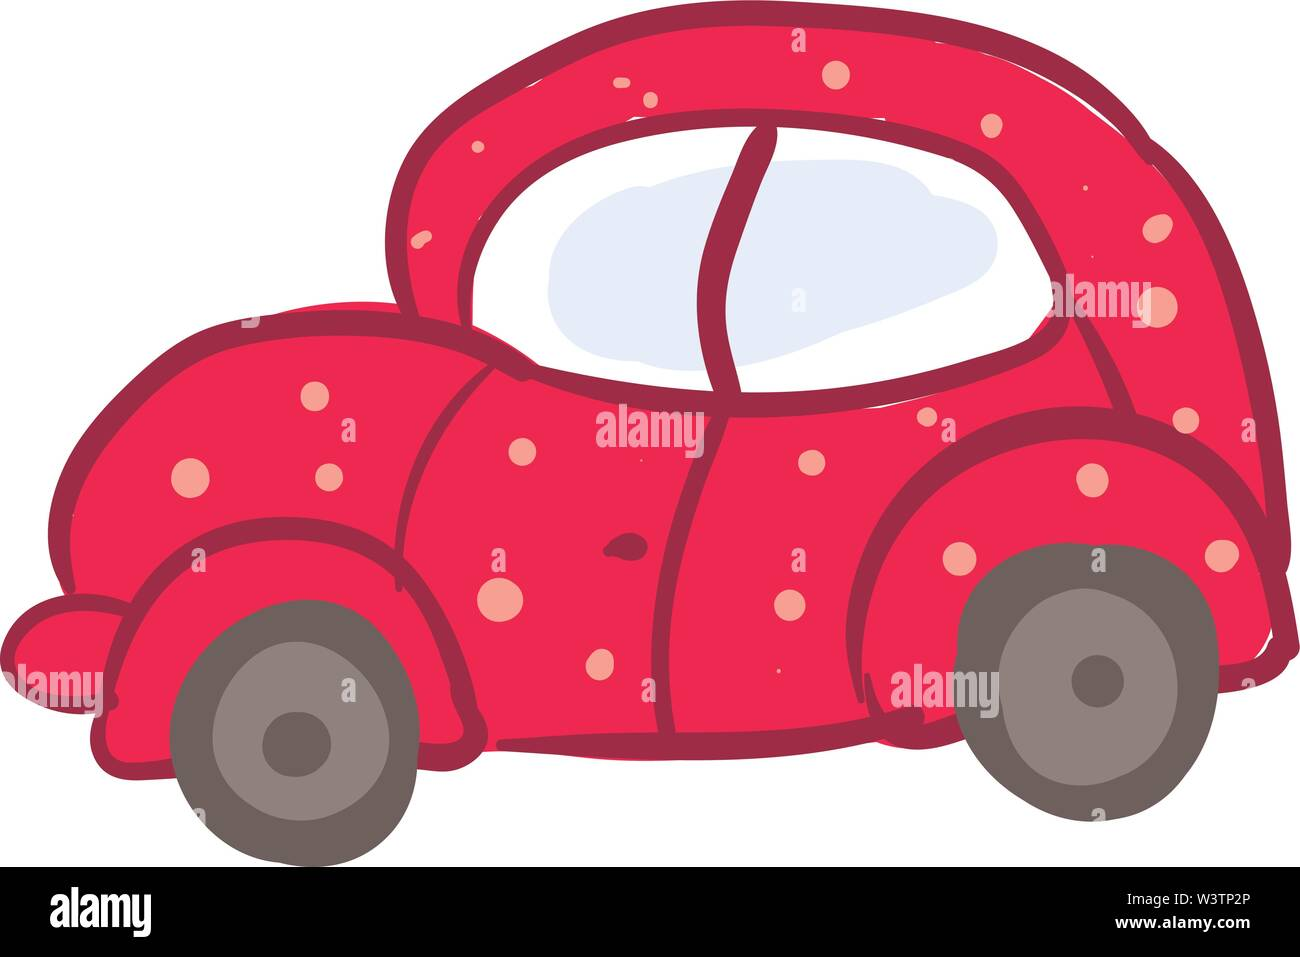 Pink car, illustration, vector on white background. Stock Vector